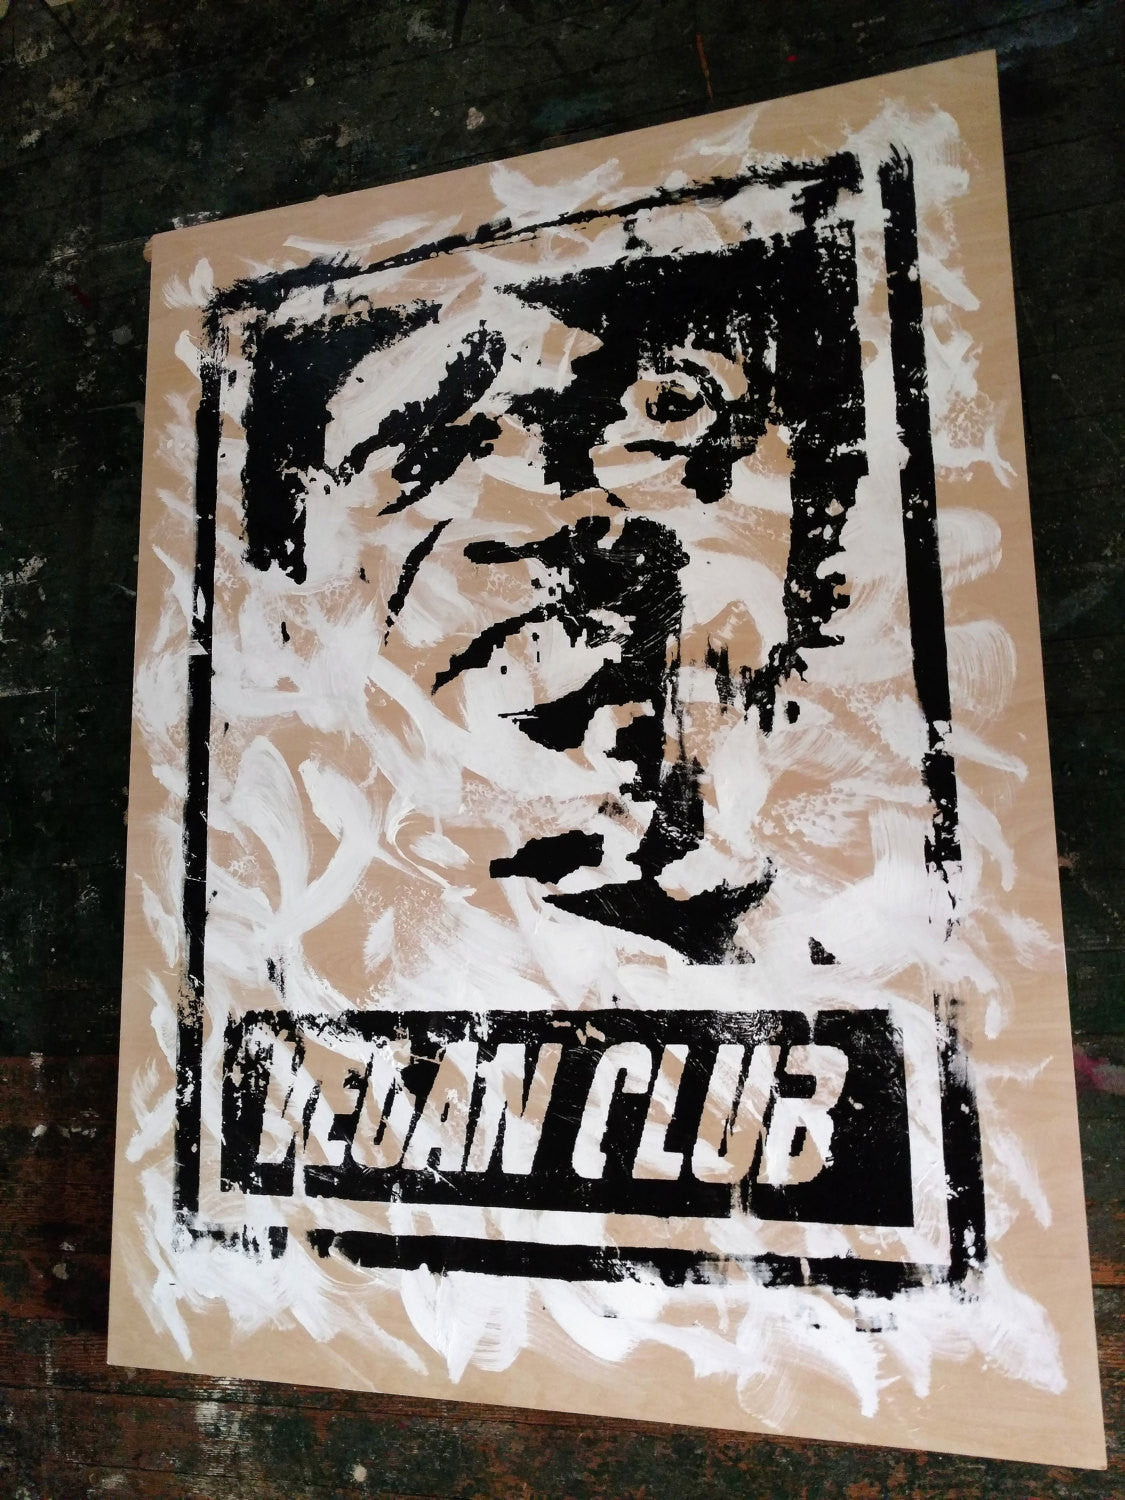 "30x40 Original Artwork ""Vegan Club"" featuring your fav vegan celeb Samuel Jackson signed L3F0u (1 of X)"